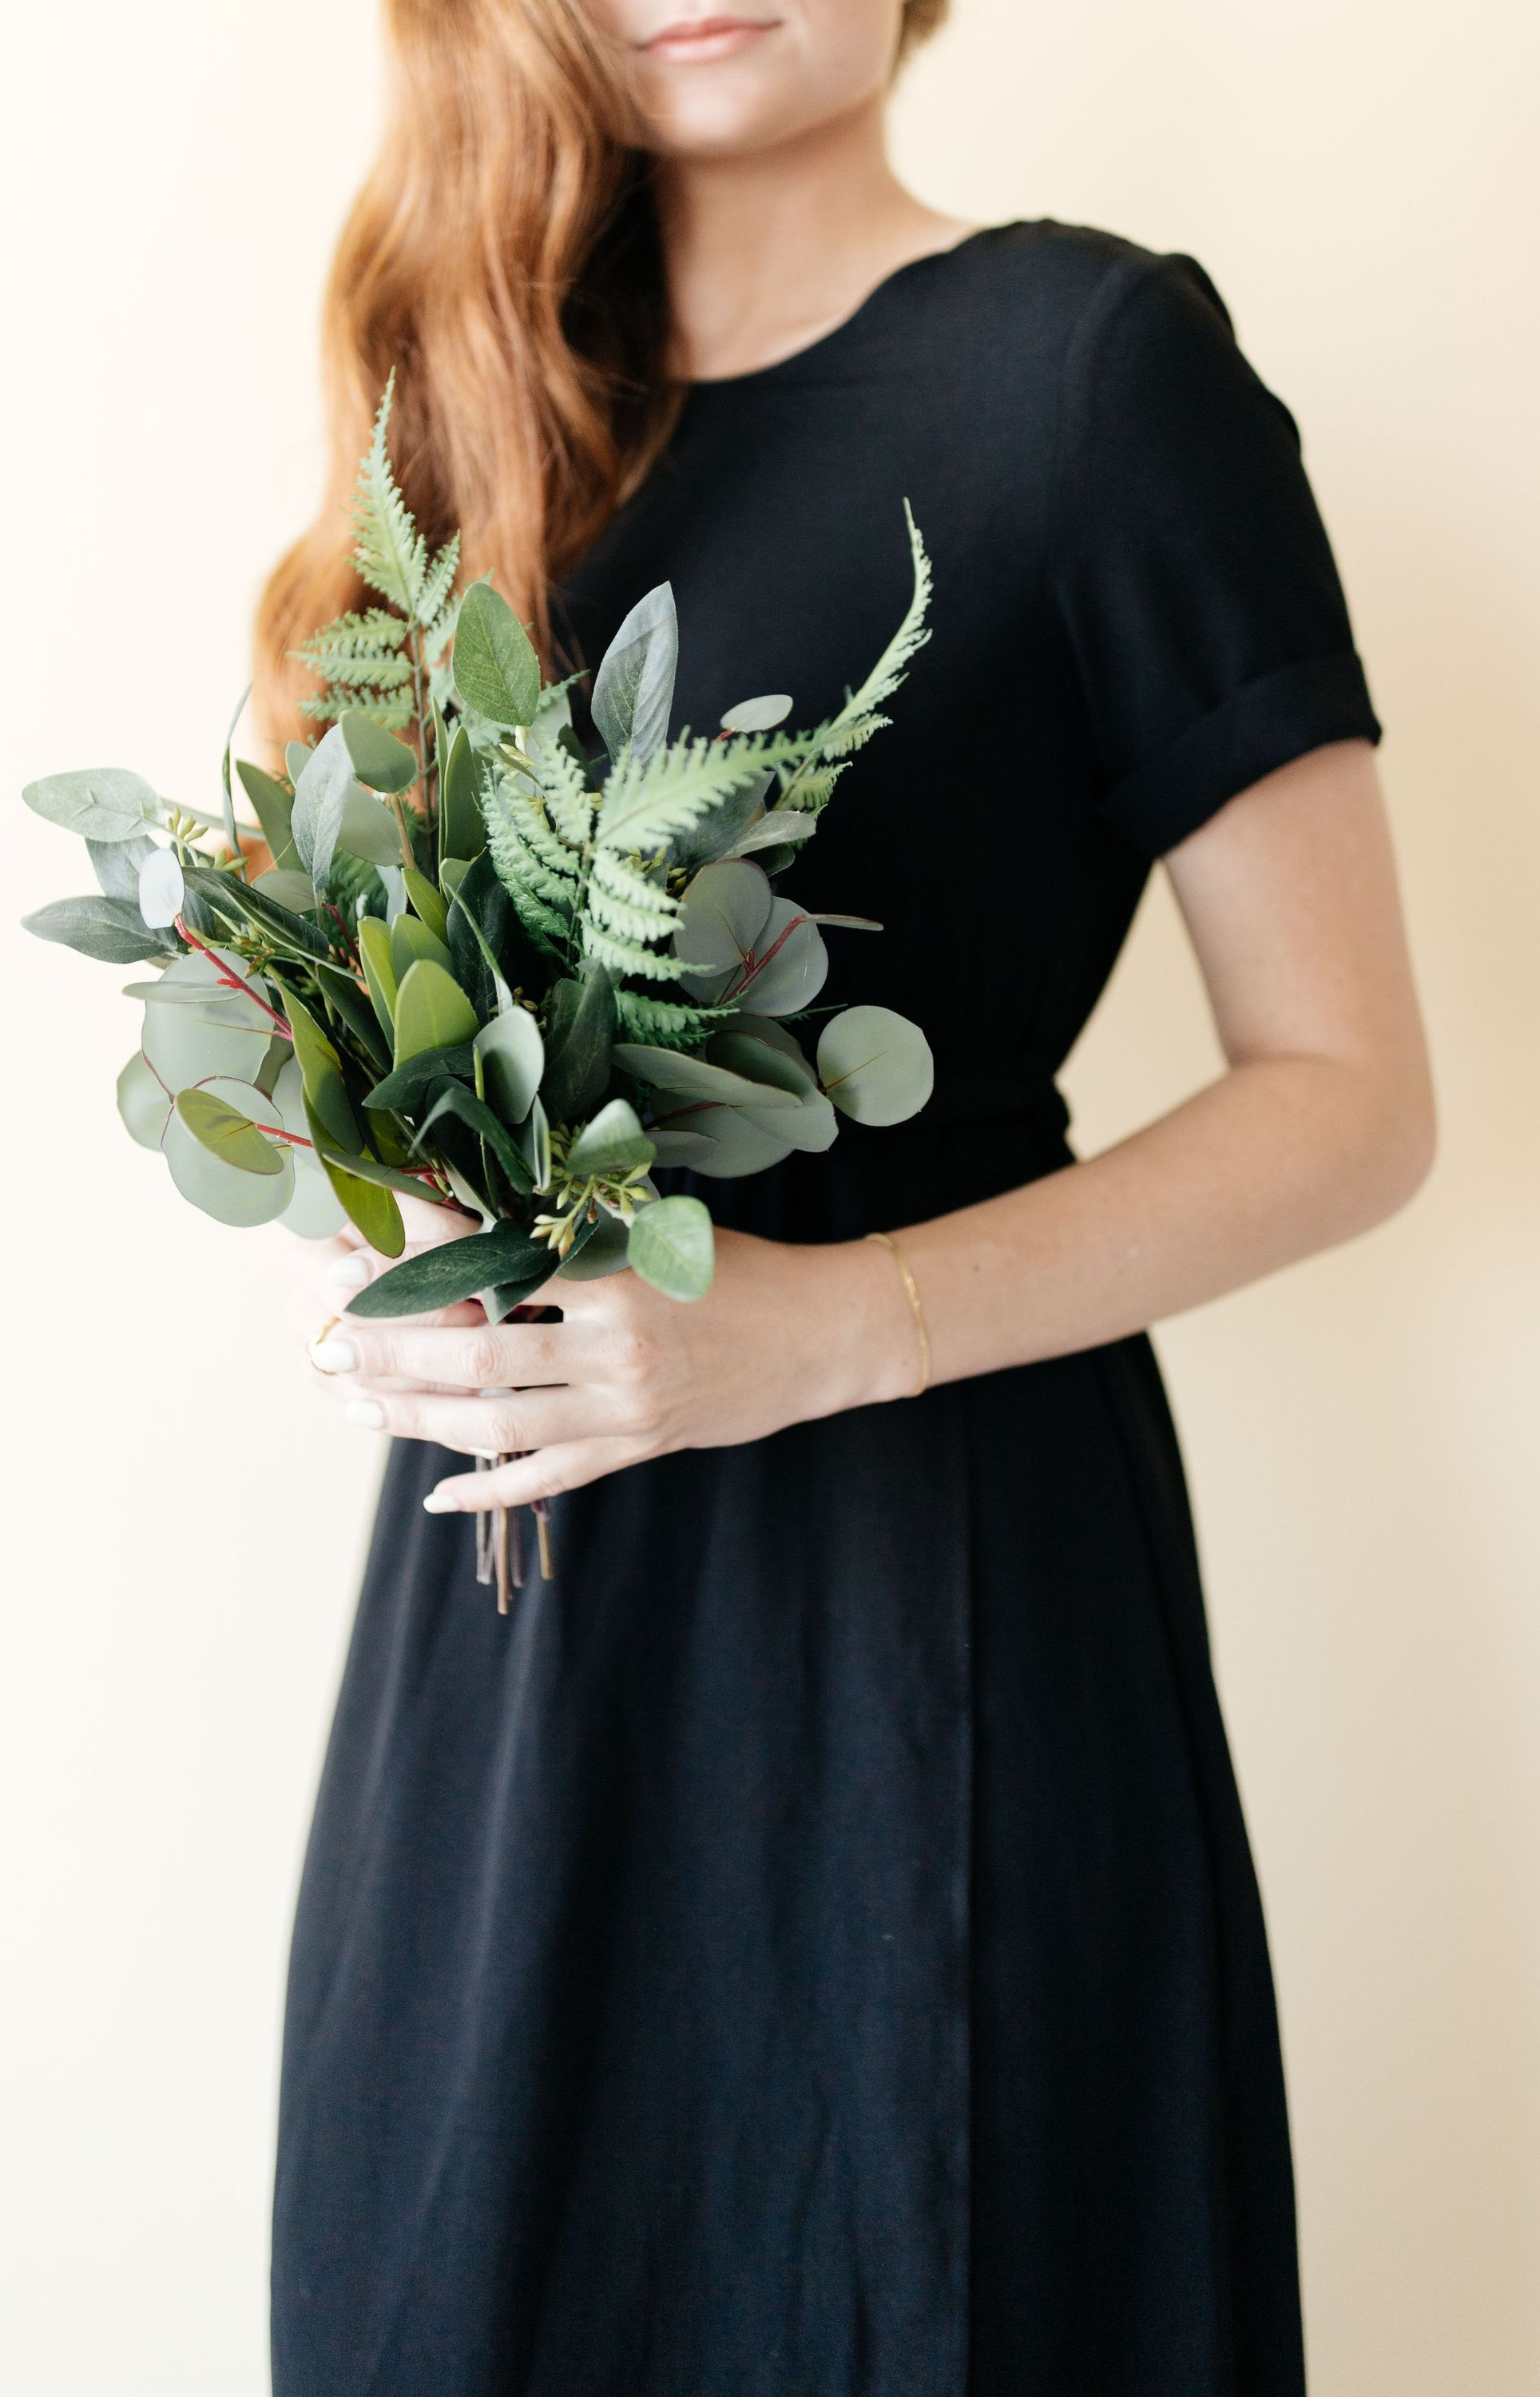 Small and Simple Eucalyptus Greenery Bouquets for Bridesmaids #bridesmaidbouquets